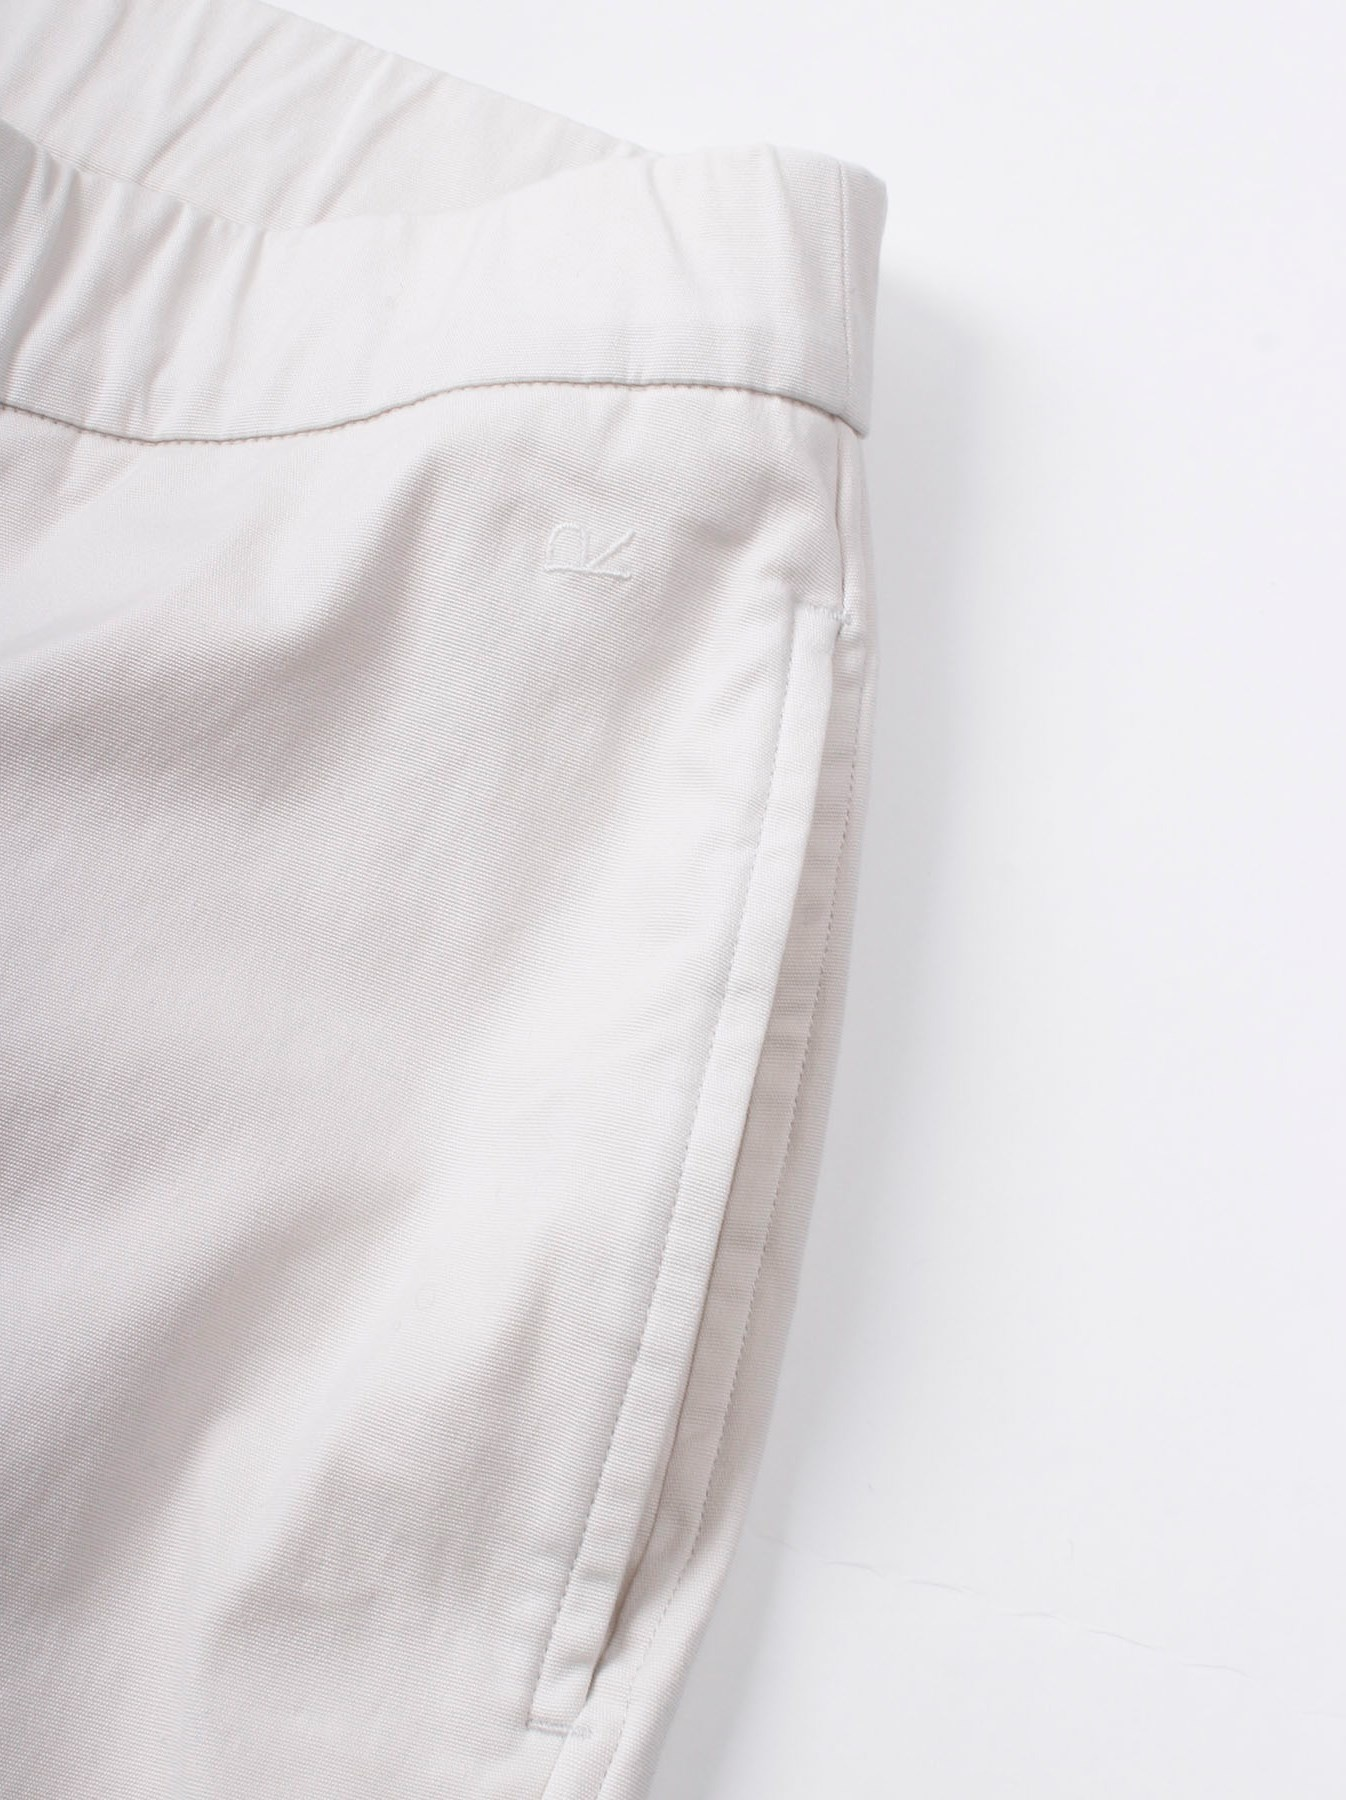 WH Weather Cloth Stretch Pants-4